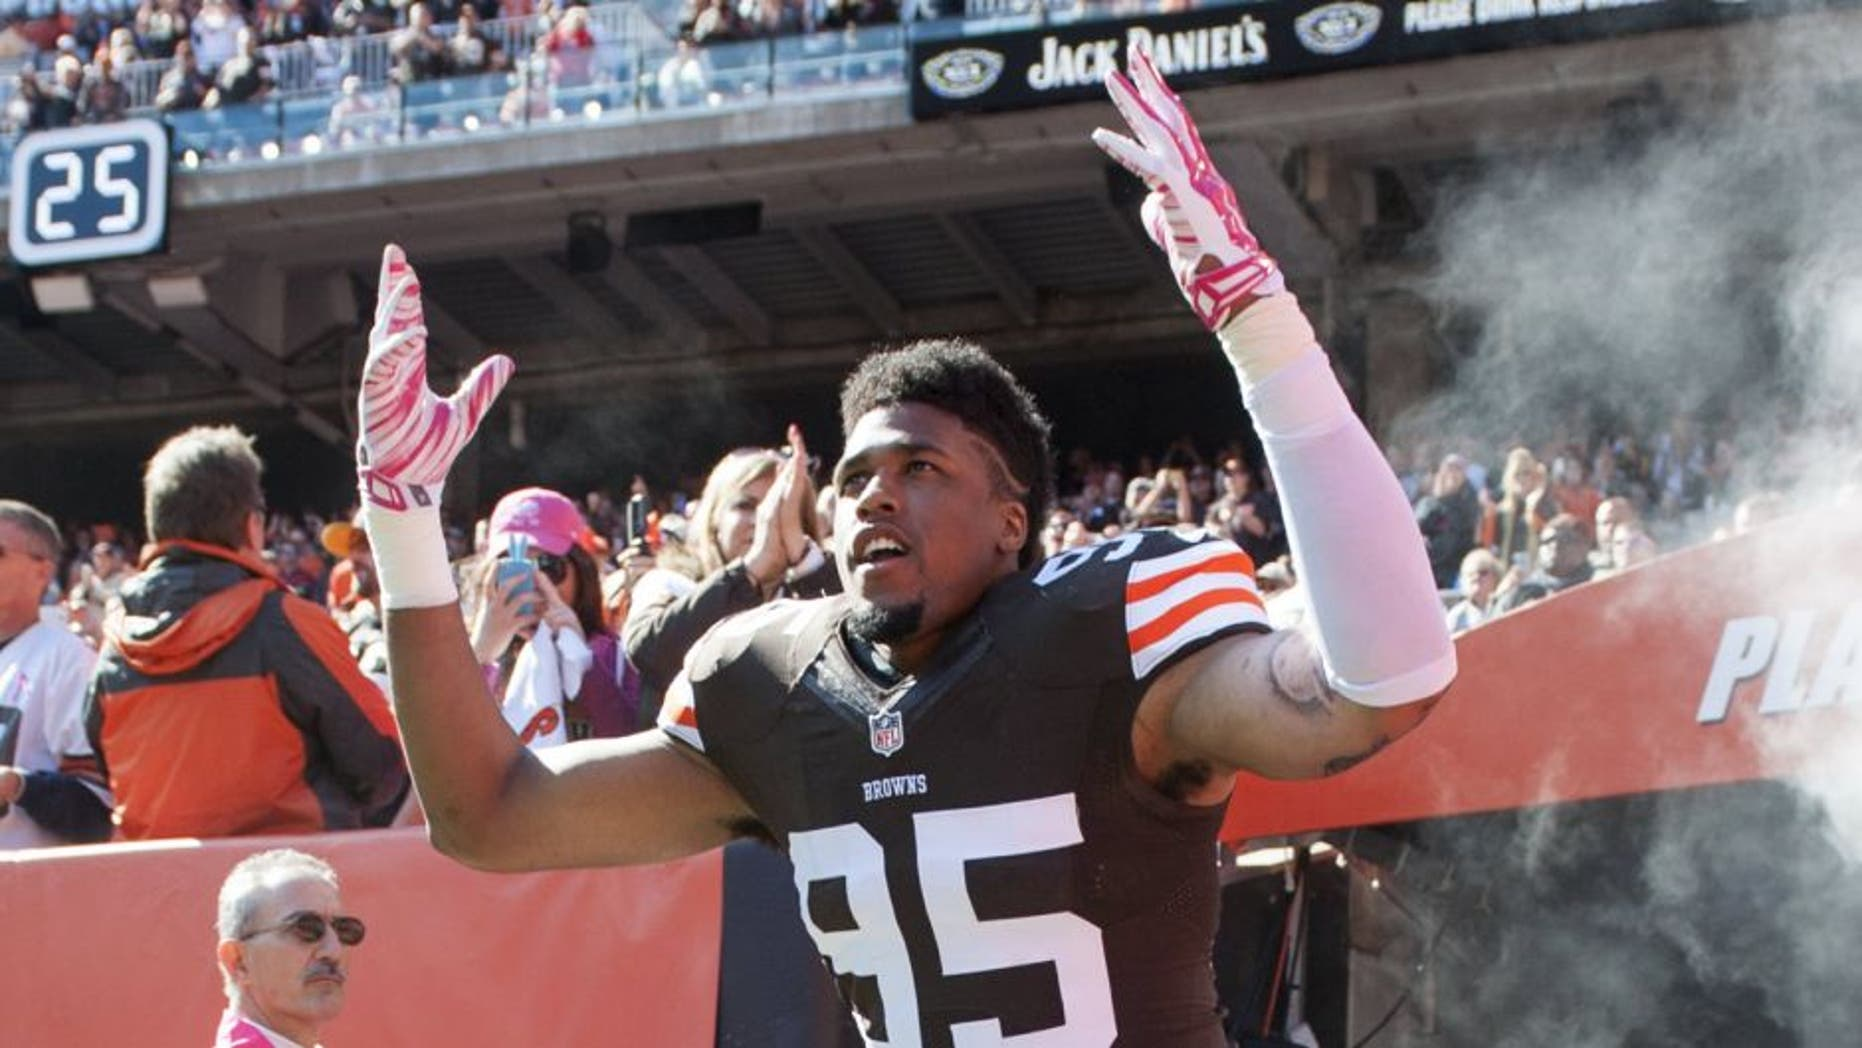 Browns linebakcer Armonty Bryant will be inactive for Sunday's game after being arrested early Friday morning.